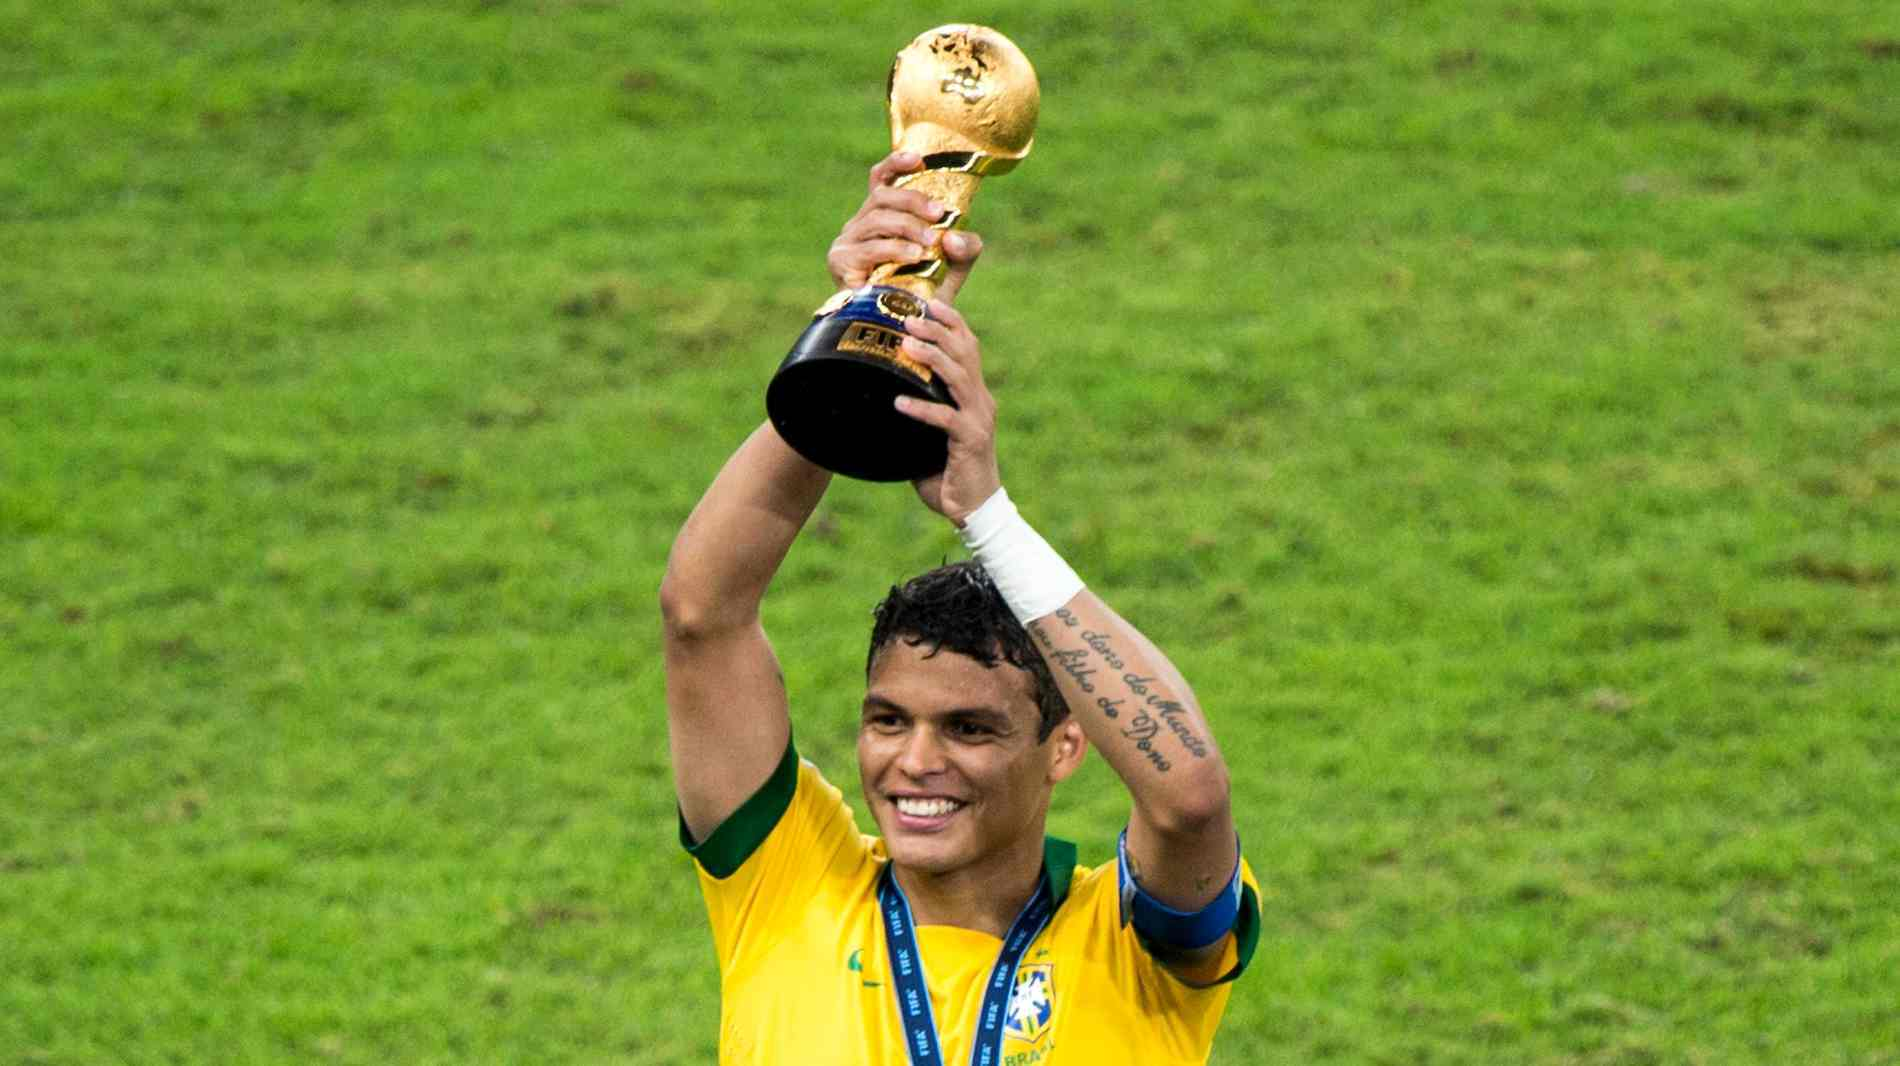 download thiago silva football soccer best player award mobile desktop background hd free images